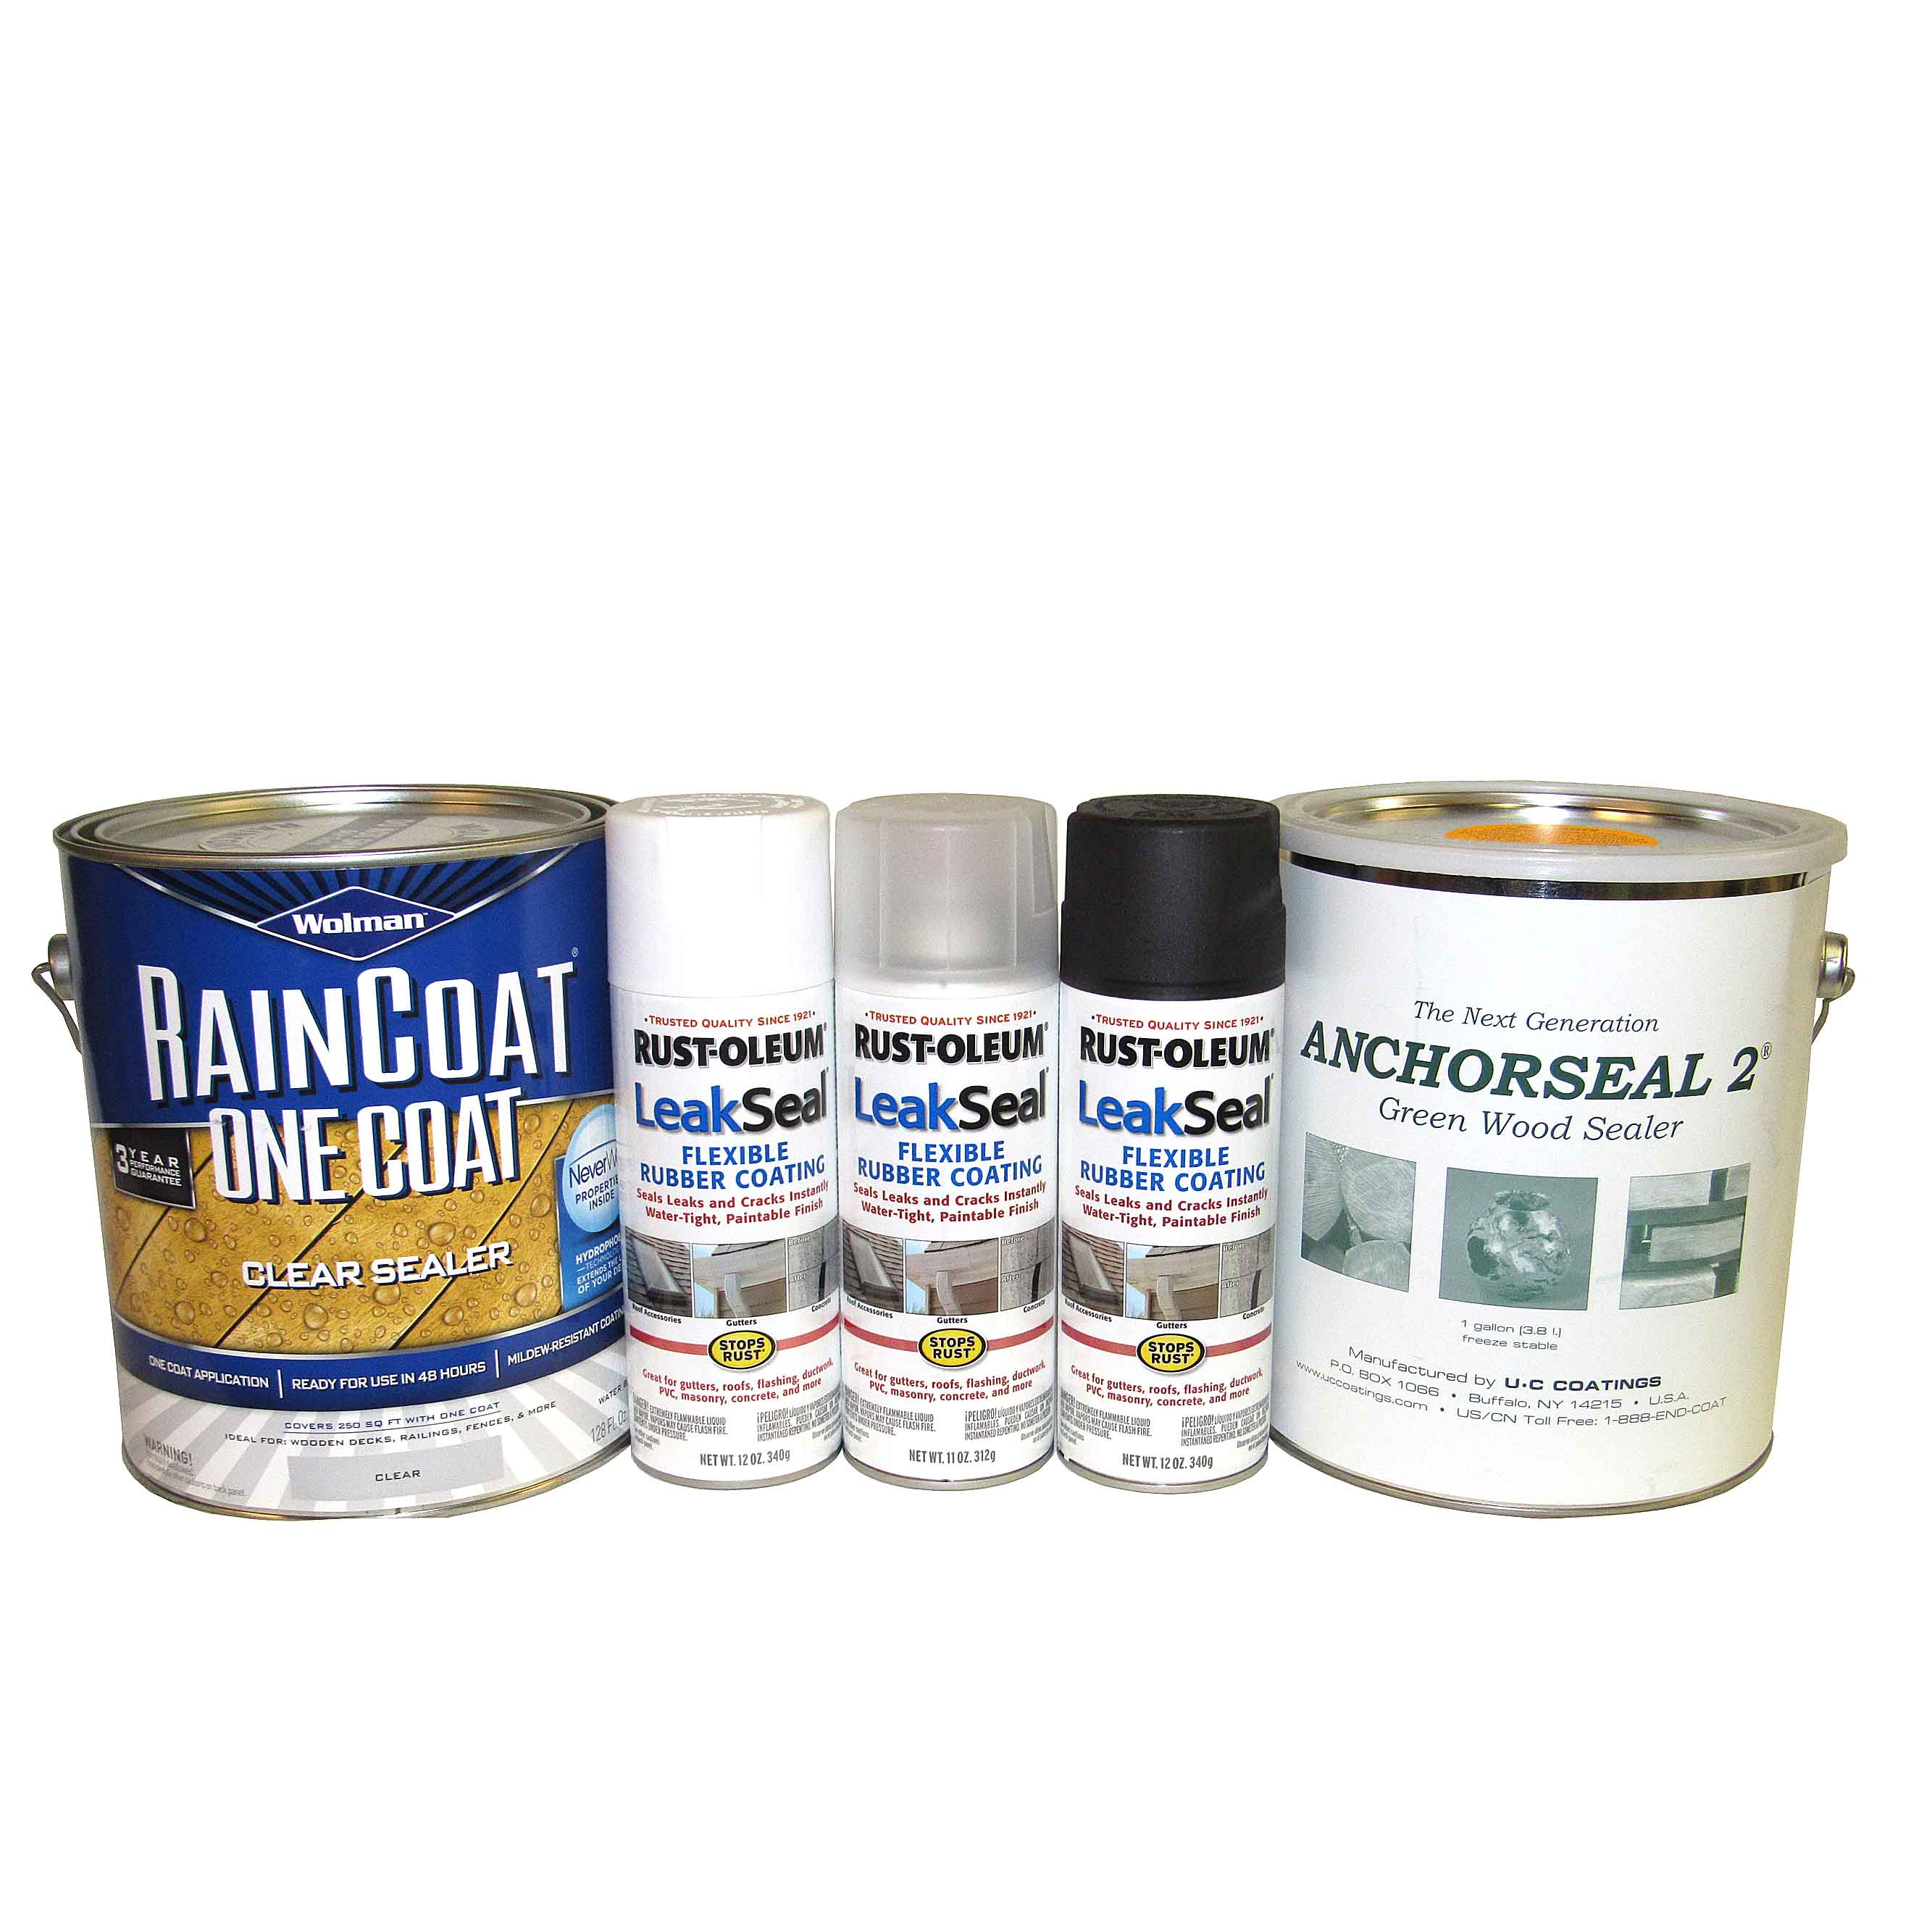 Caulks, Adhesives and Sealants